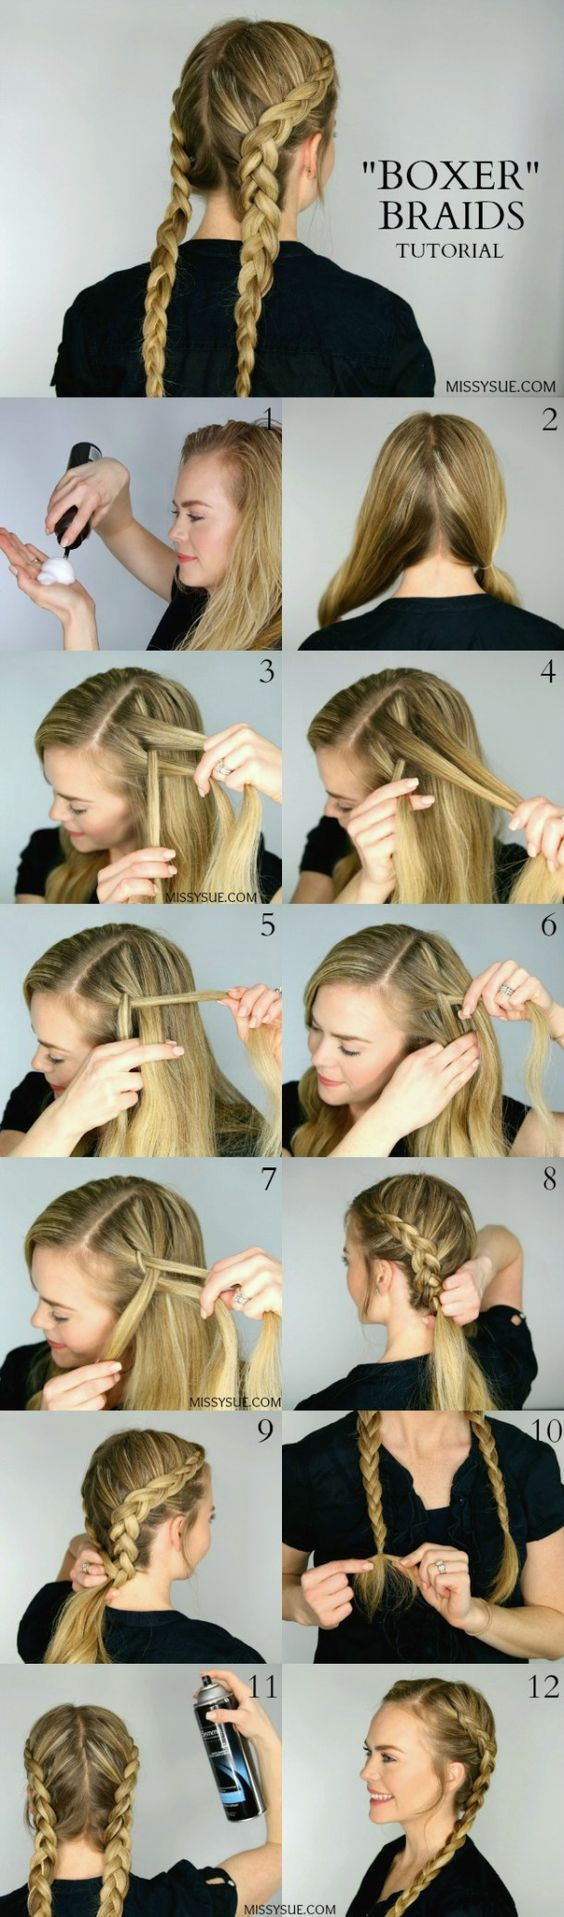 20 Gorgeous Hairstyles For Long Hair With Images Medium Hair Styles Cool Hairstyles Braided Hairstyles Tutorials